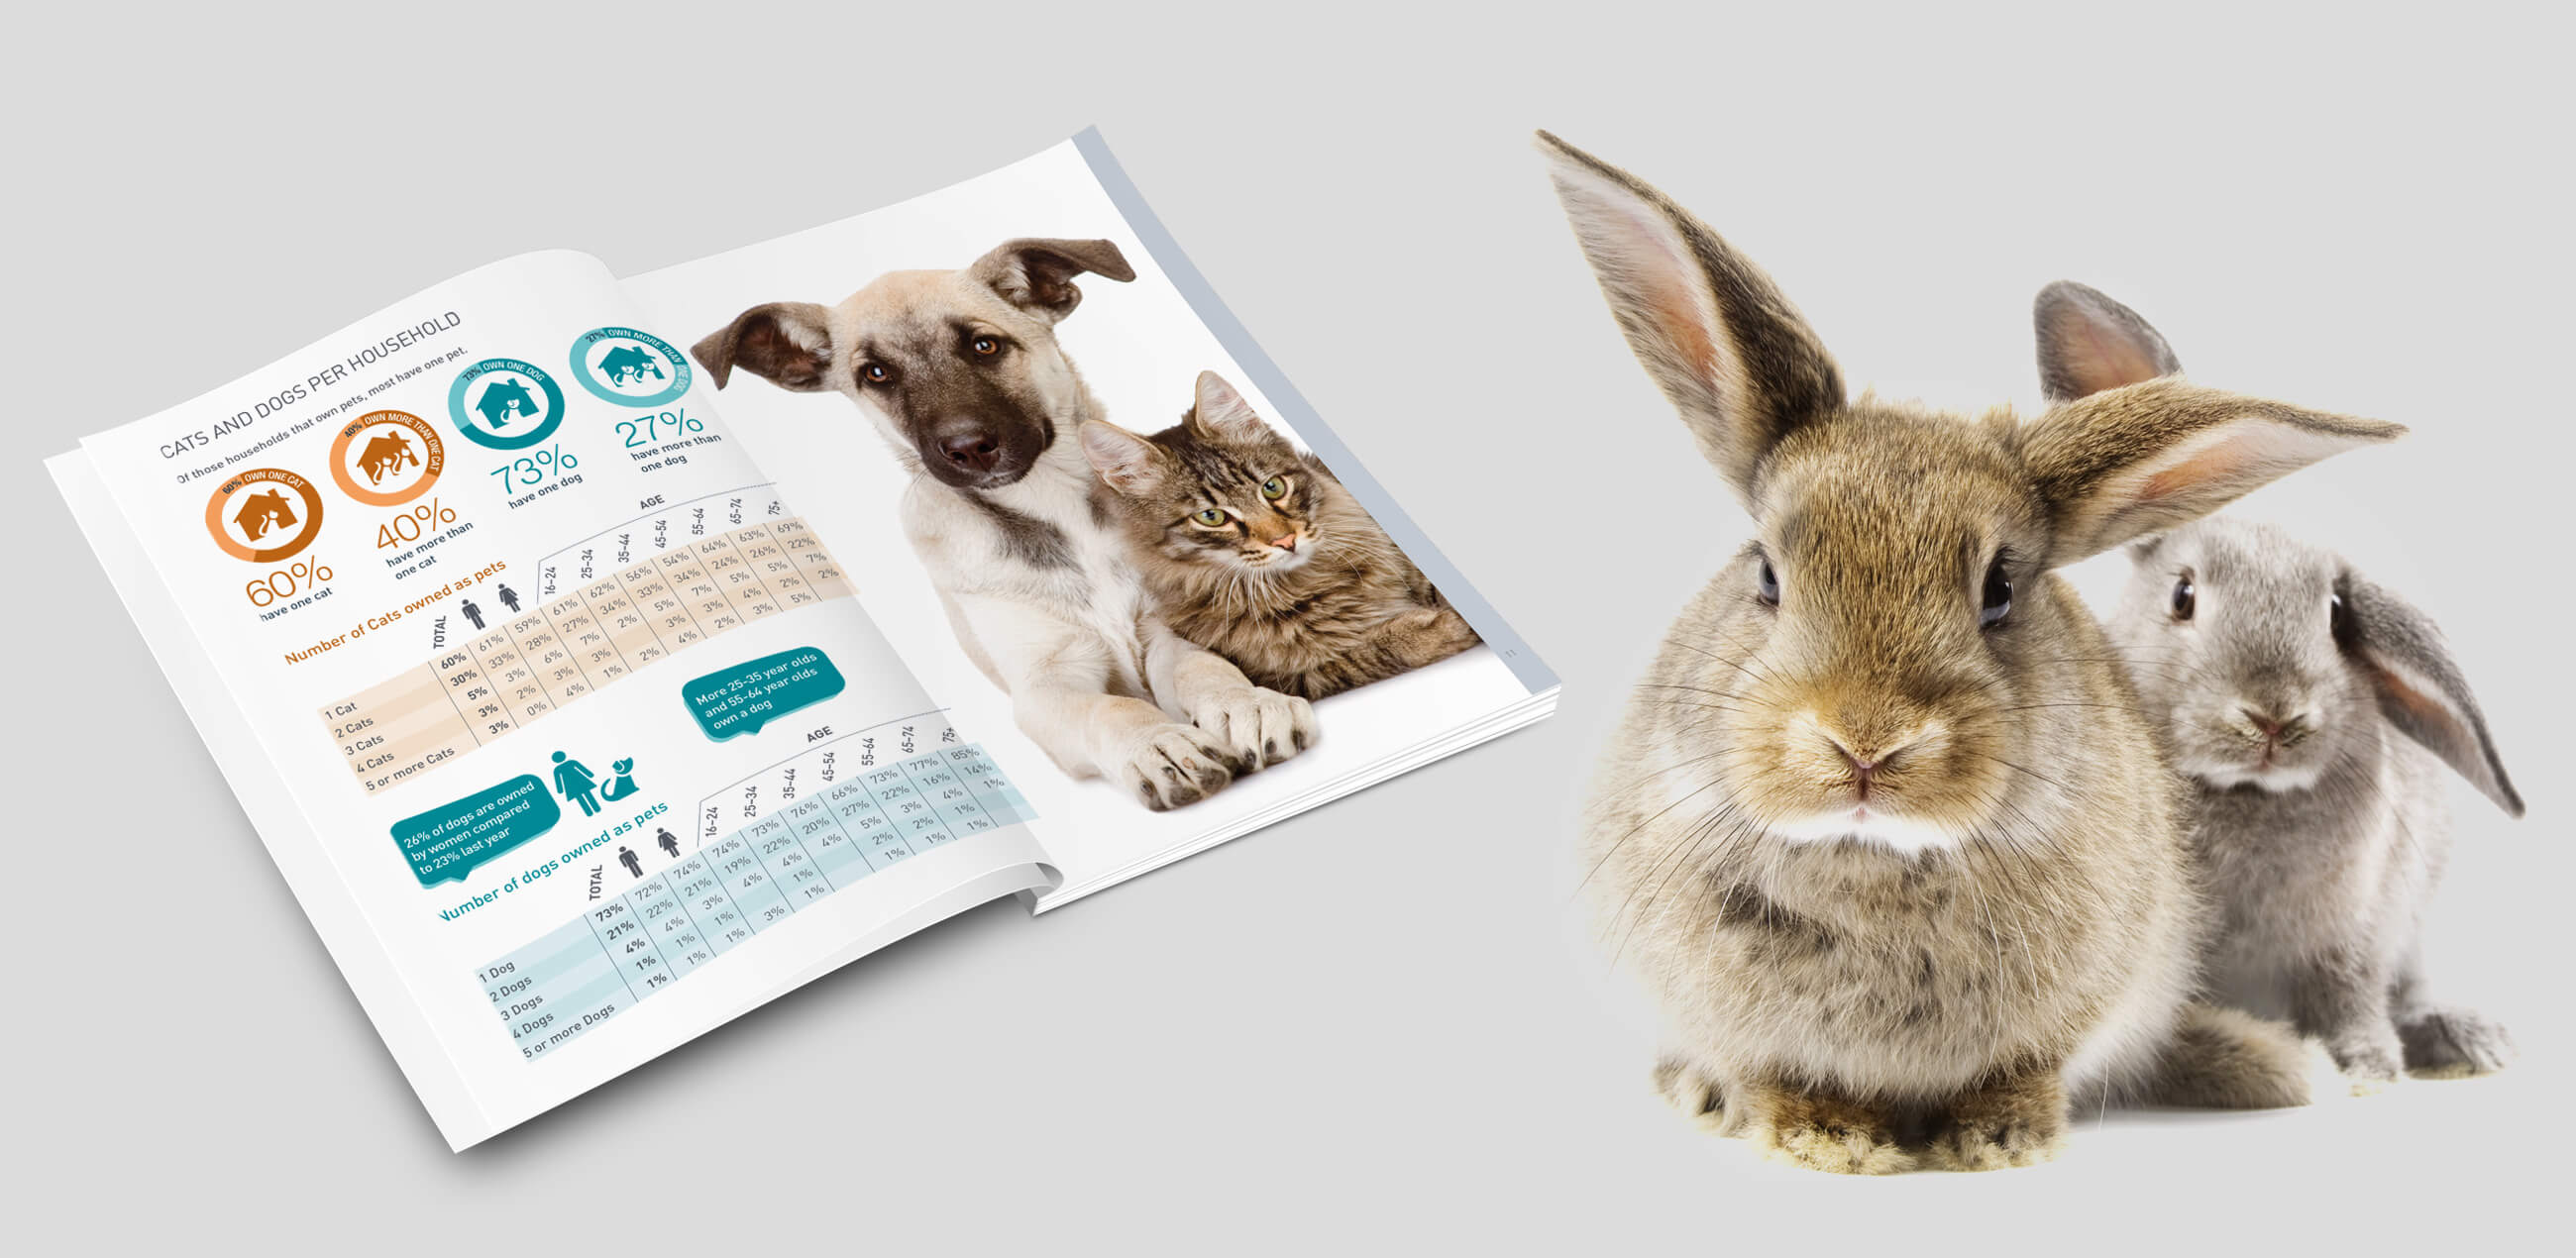 Data Report inside spread for PFMA Pet Food Manufacturers Association